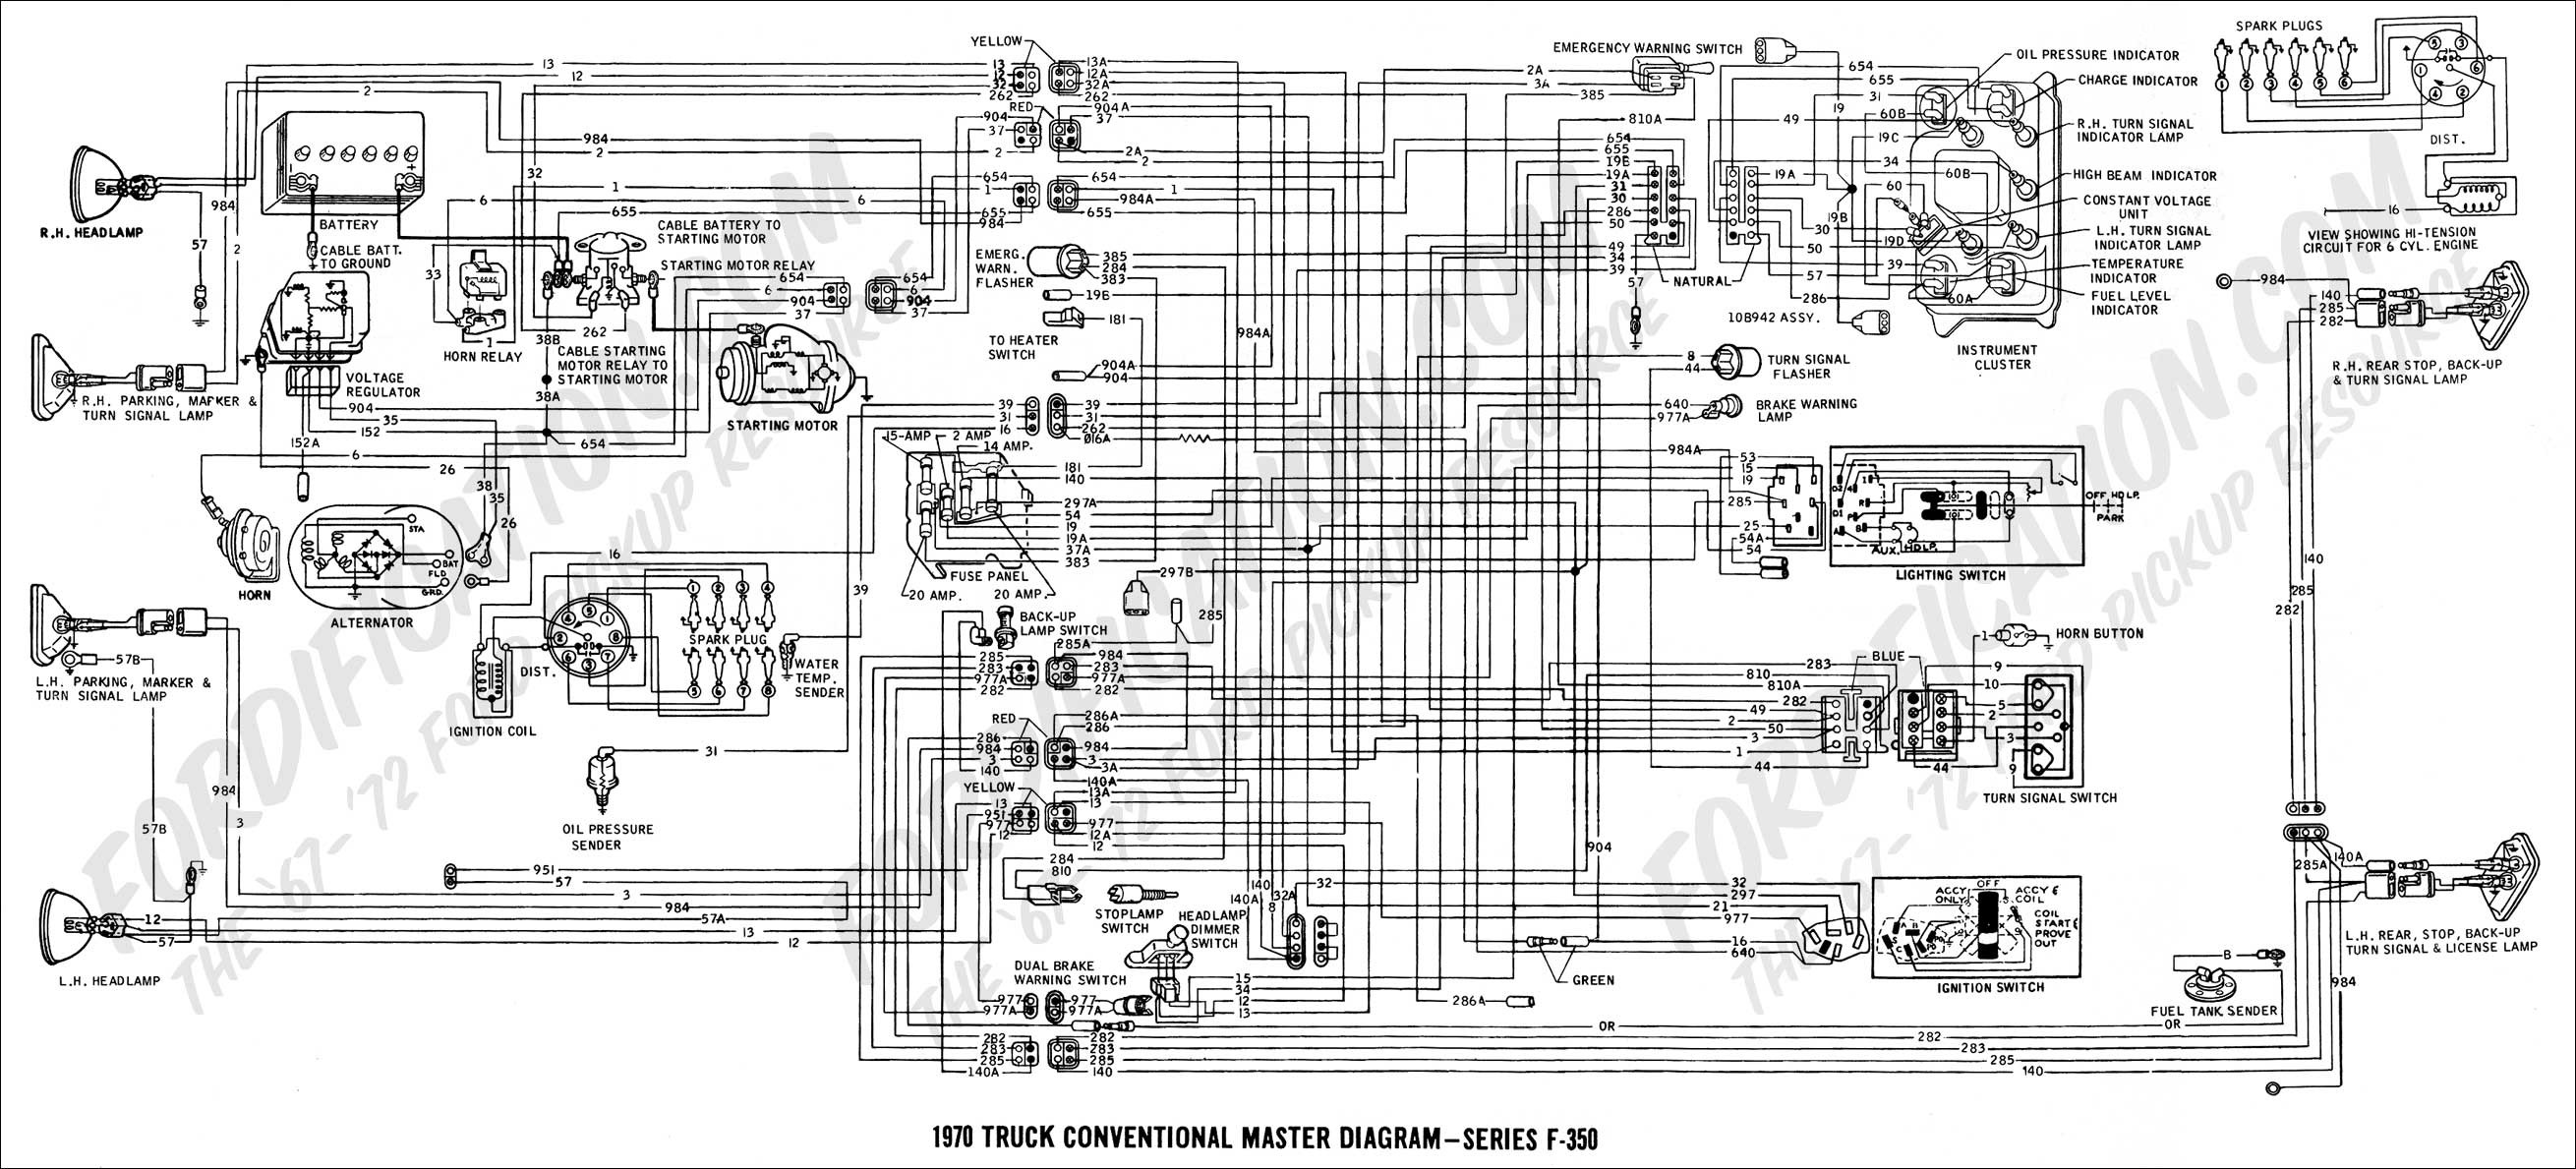 2004 ford Explorer Engine Diagram ford Truck Technical Drawings and Schematics Section H Wiring Fair Of 2004 ford Explorer Engine Diagram